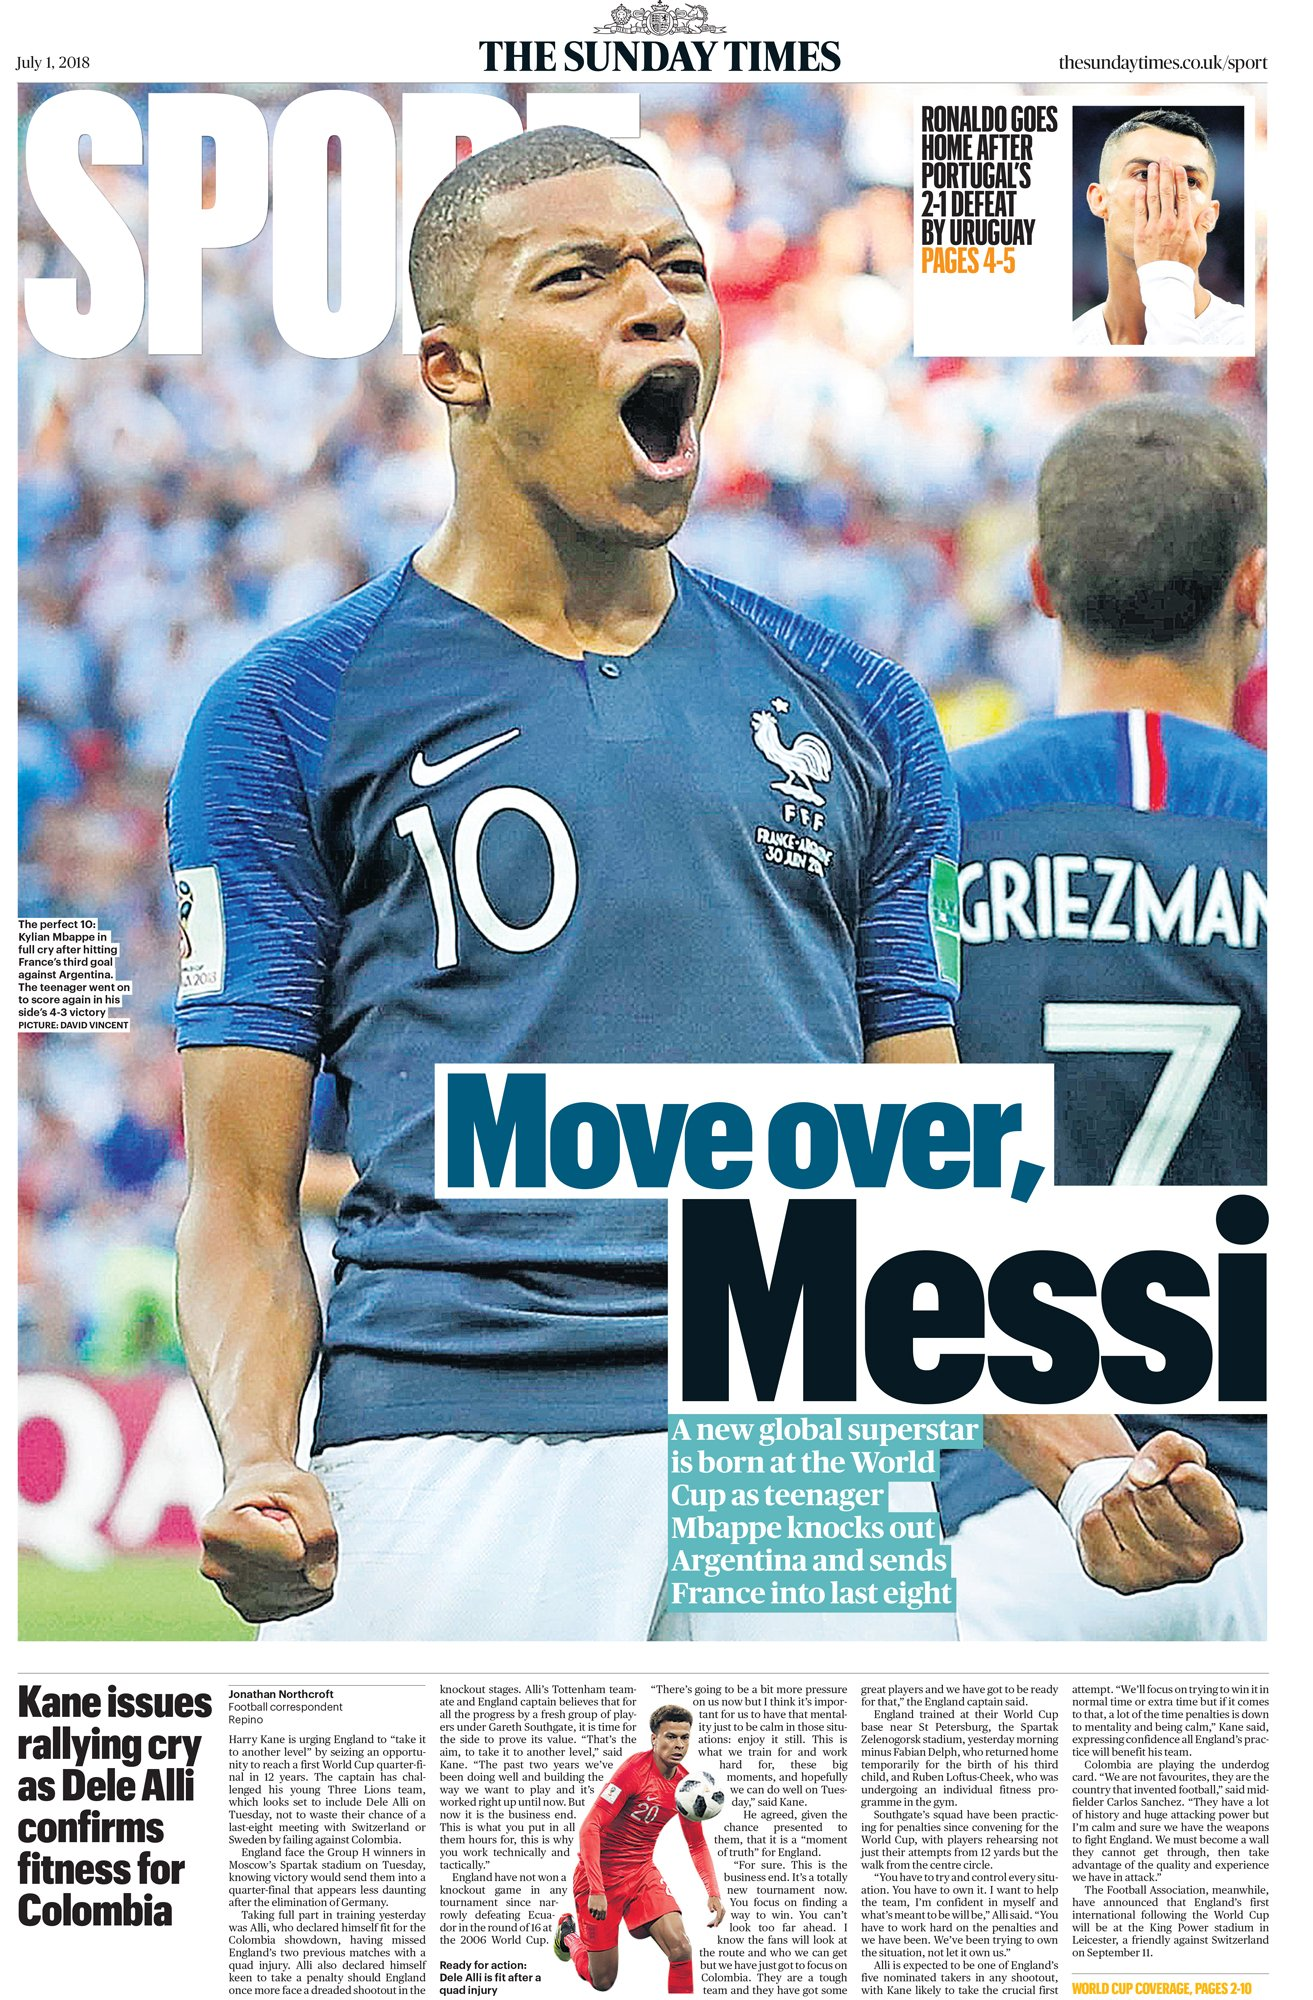 TOMORROW'S FRONT COVER | Move over Messi: Kylian Mbappe fires France past Argentina | Harry Kane issues rallying cry as Dele Alli confirmed fit for Colombia #tomorrowspaperstoday https://t.co/eSHp9oxgmO